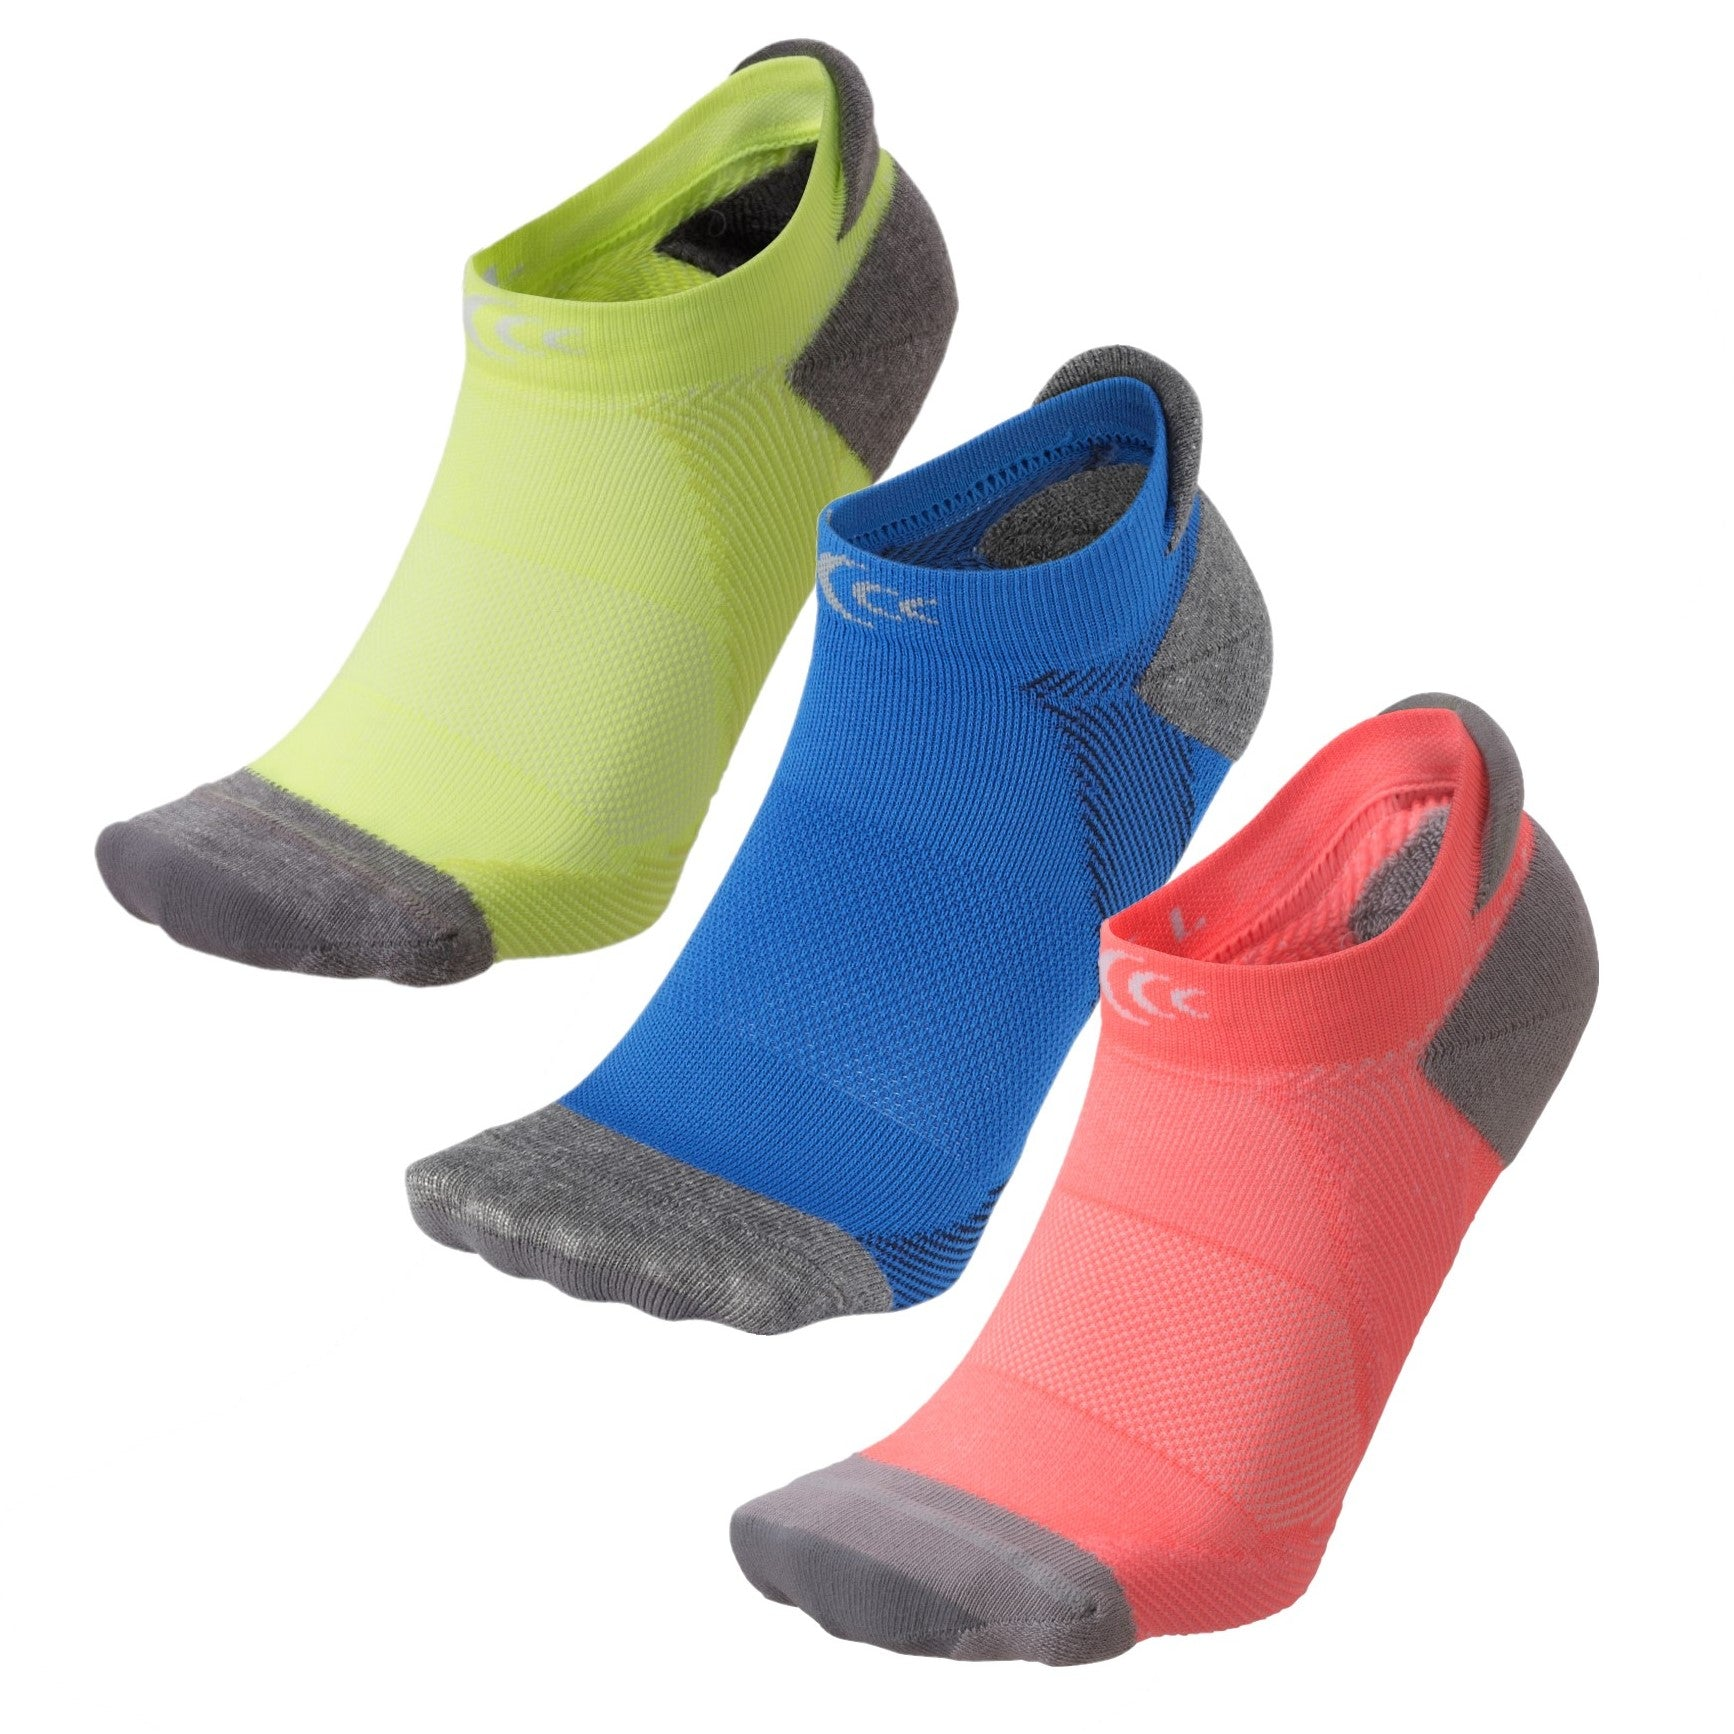 Arch Support Short Socks Assortment